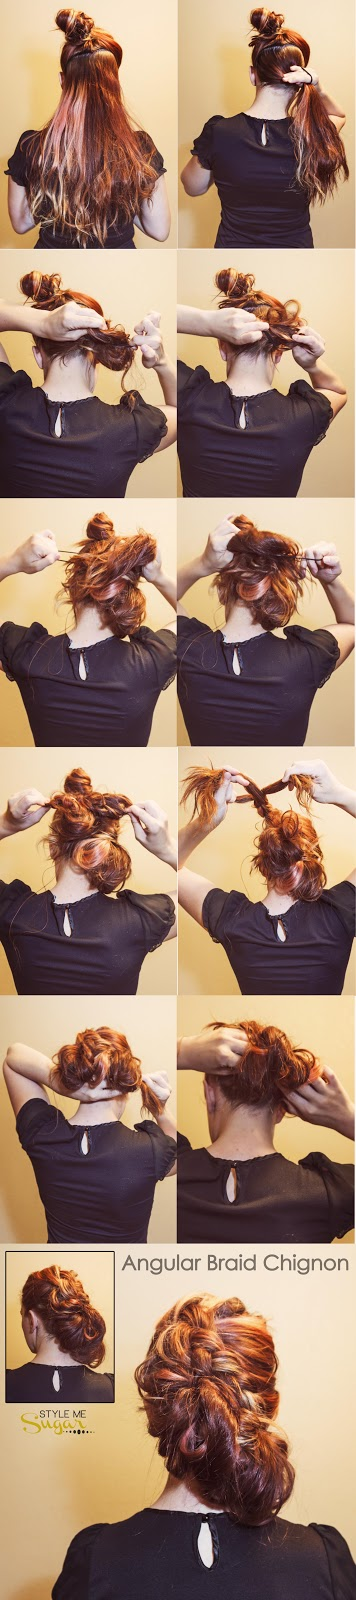 Angular+Braid+Chignon.jpg